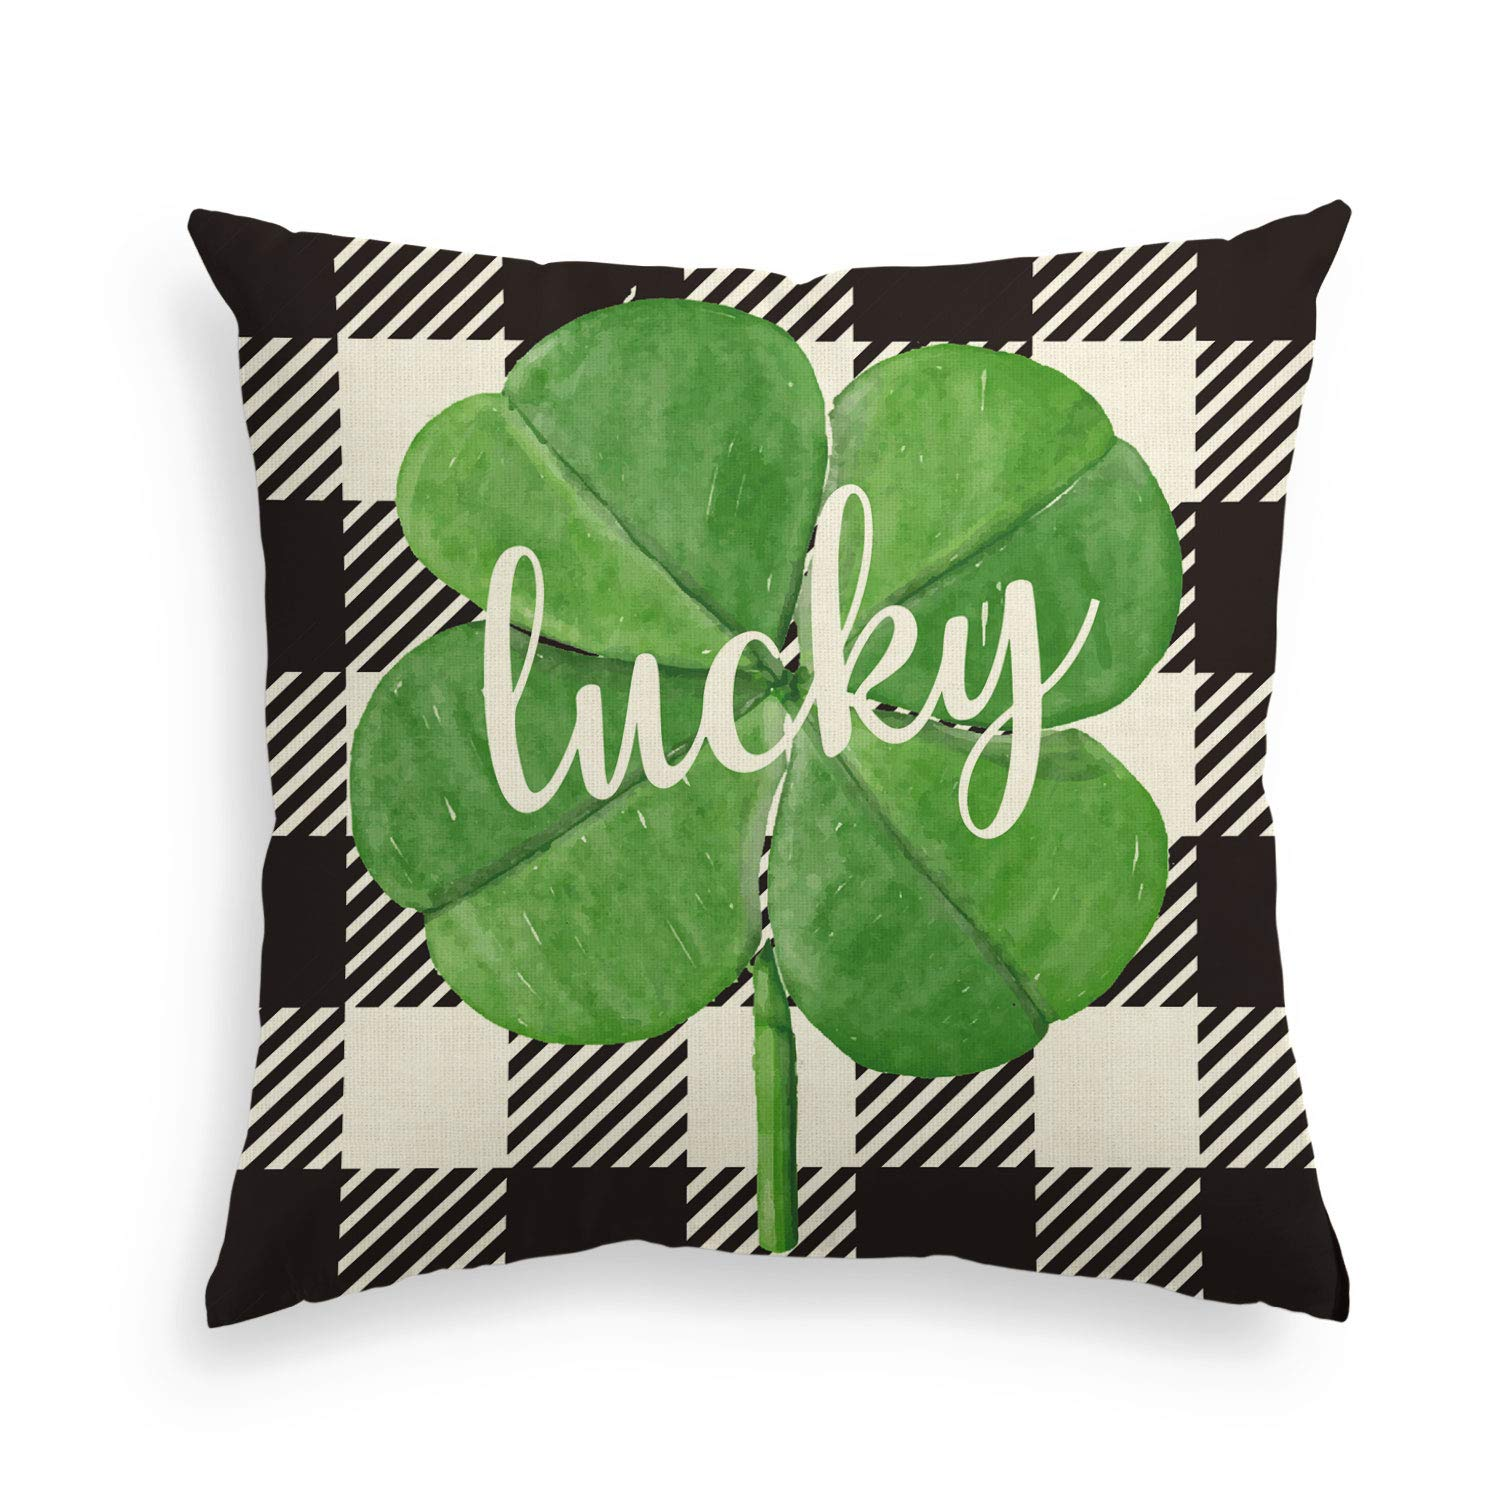 AVOIN Black and White Buffalo Plaid Shamrock Throw Pillow Cover, 18 x 18 Inch St Patrick's Day Lucky Clover Linen Cushion Case Decoration for Sofa Couch